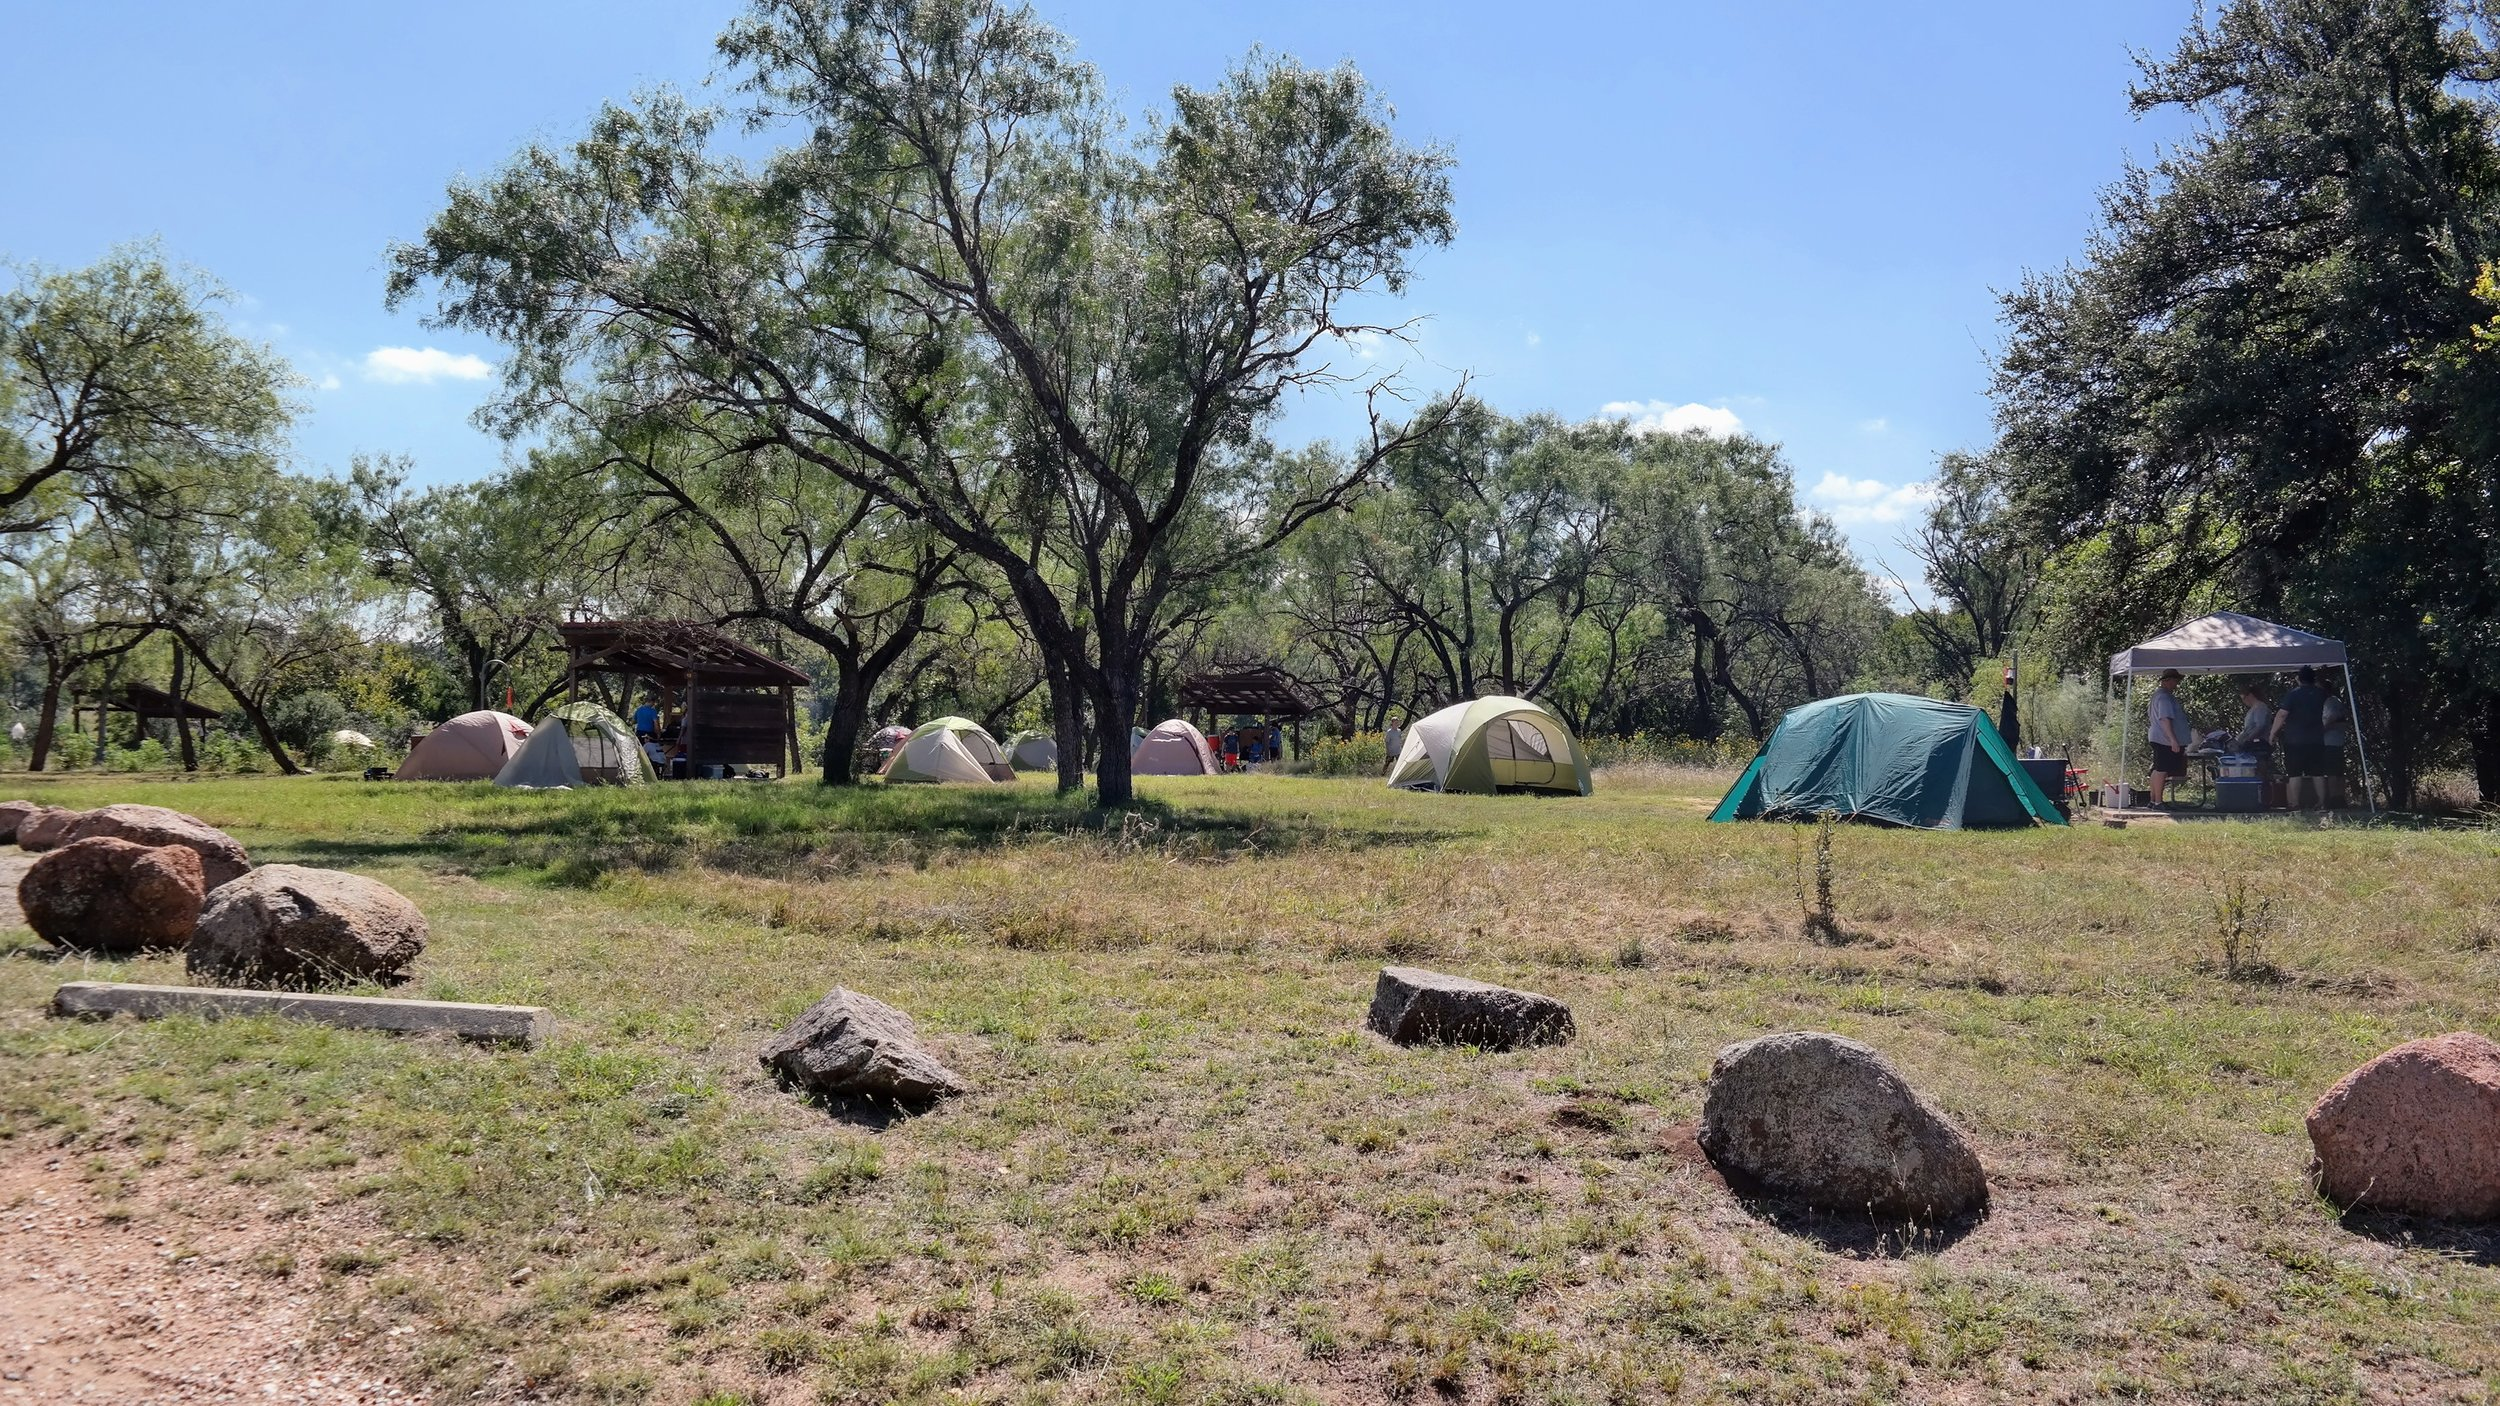 Walk-in campsites 1-21 have less trees to provide privacy.